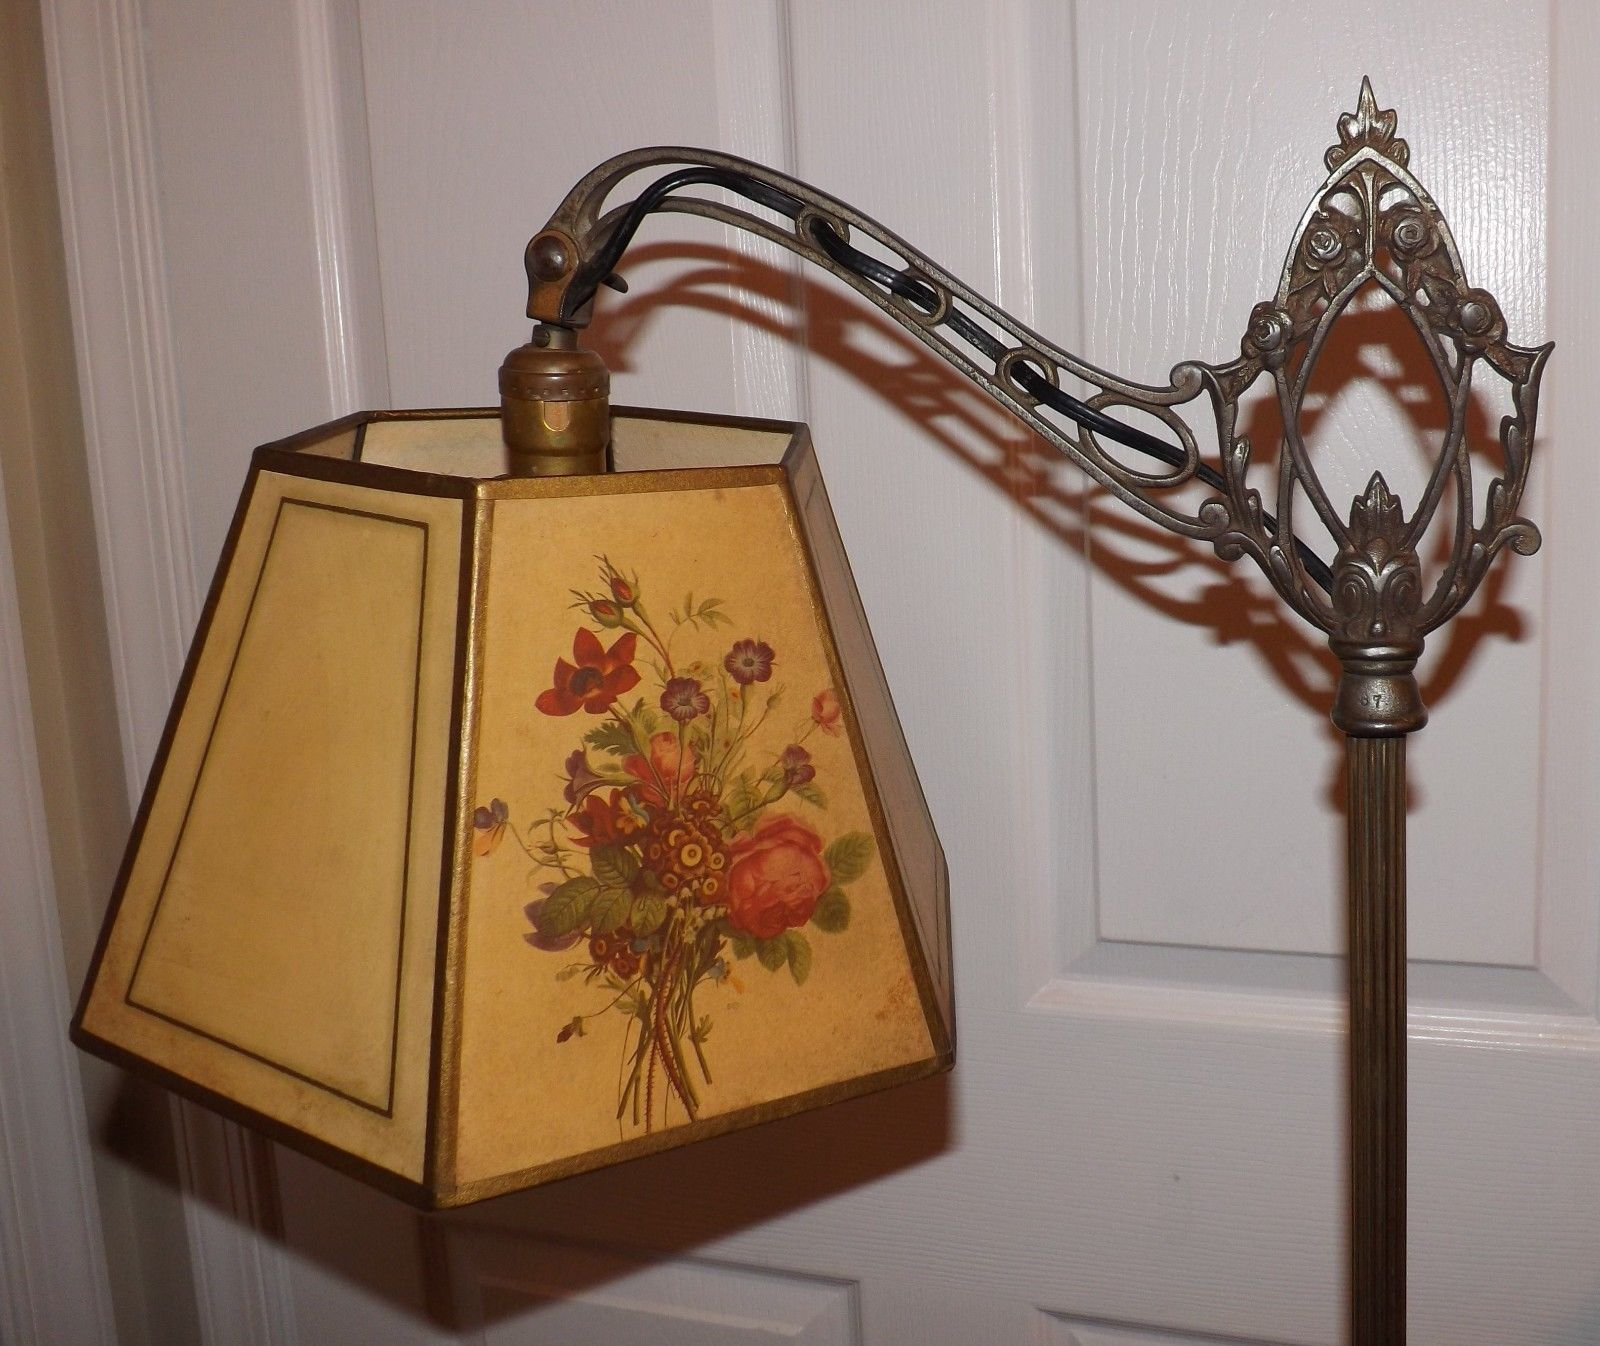 Dale tiffany floor lamps foter - Beautiful Antique Bridge Arm Lamp Silver Brass Finish Roses Flowers Shade